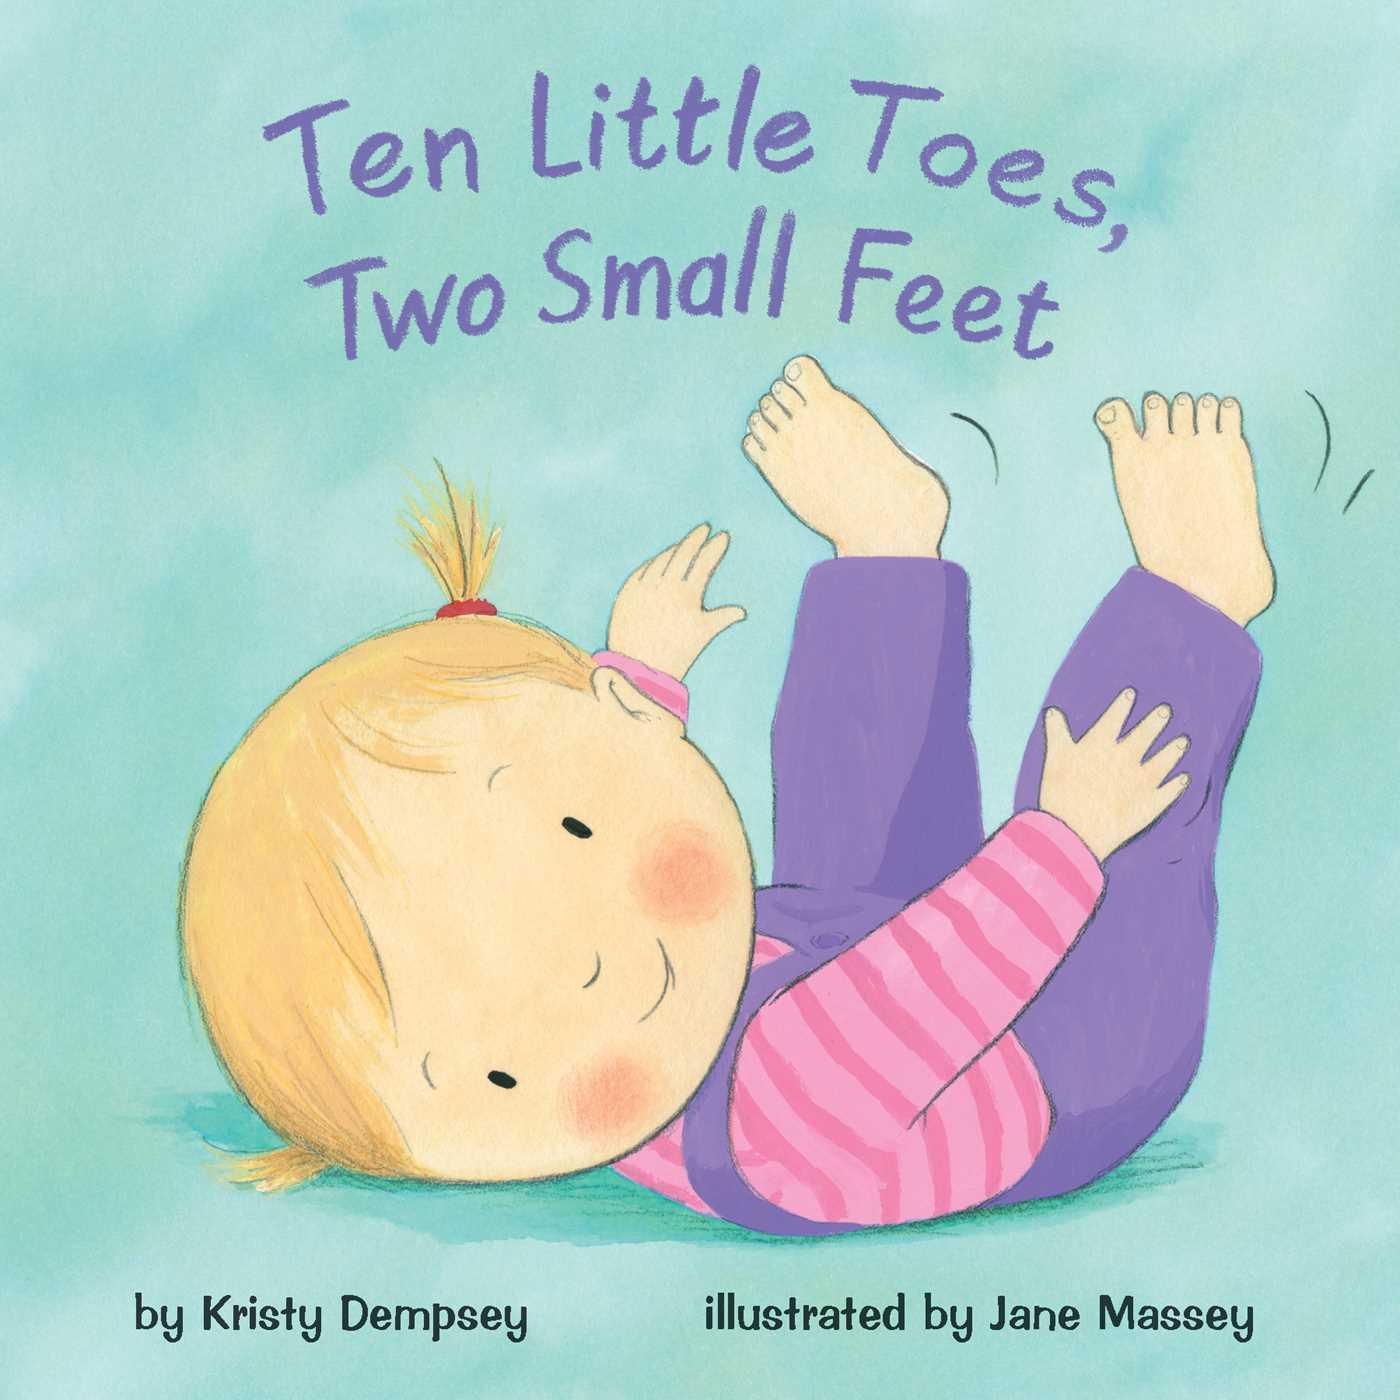 Ten Little Toes Two Small Feet